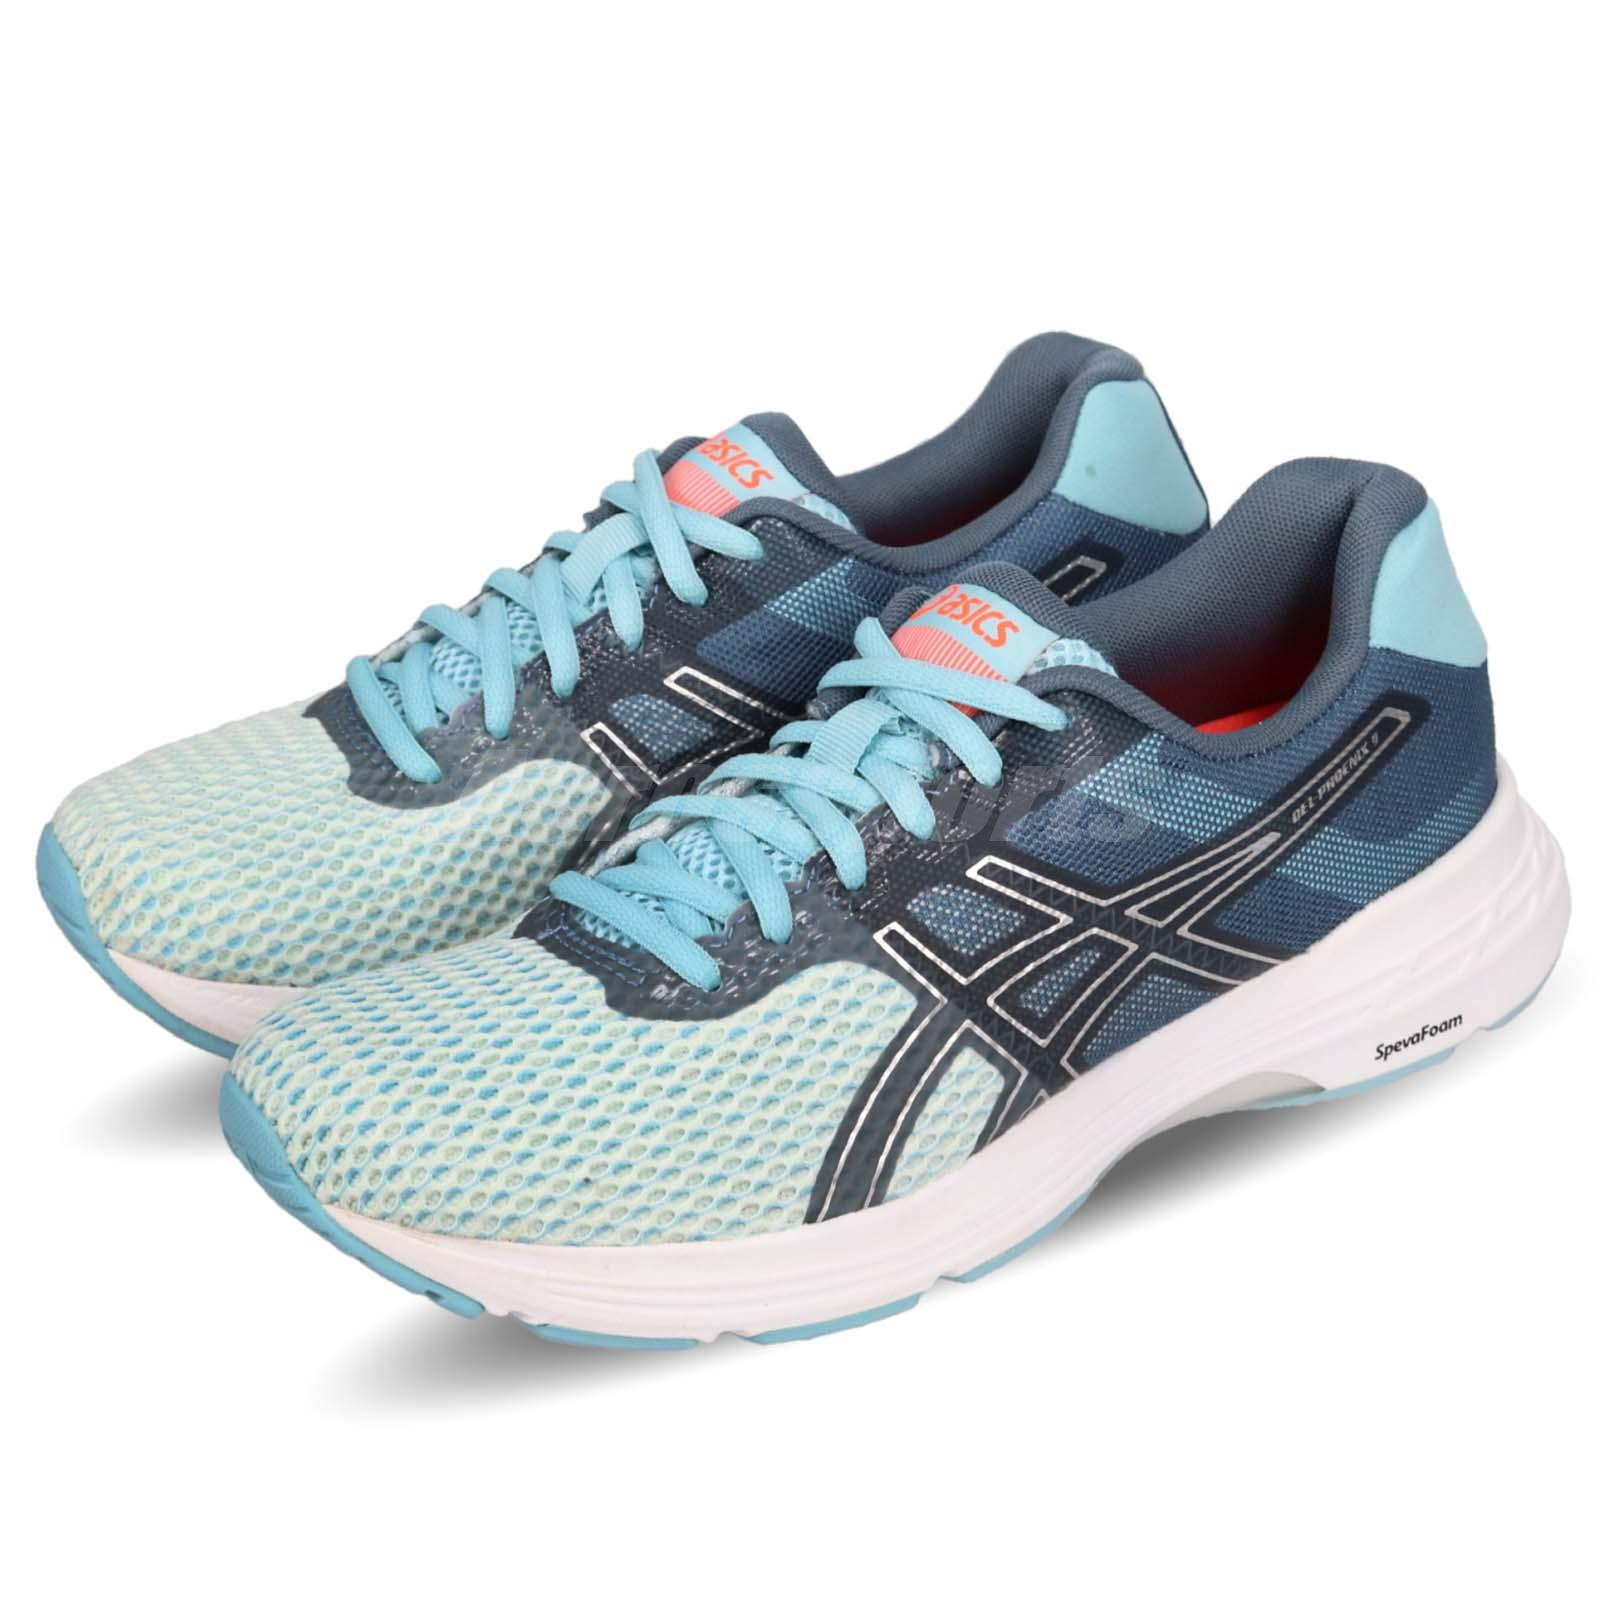 Details About Asics Gel Phoenix 9 Blue Silver White Women Running Shoes Sneakers T872n 1493